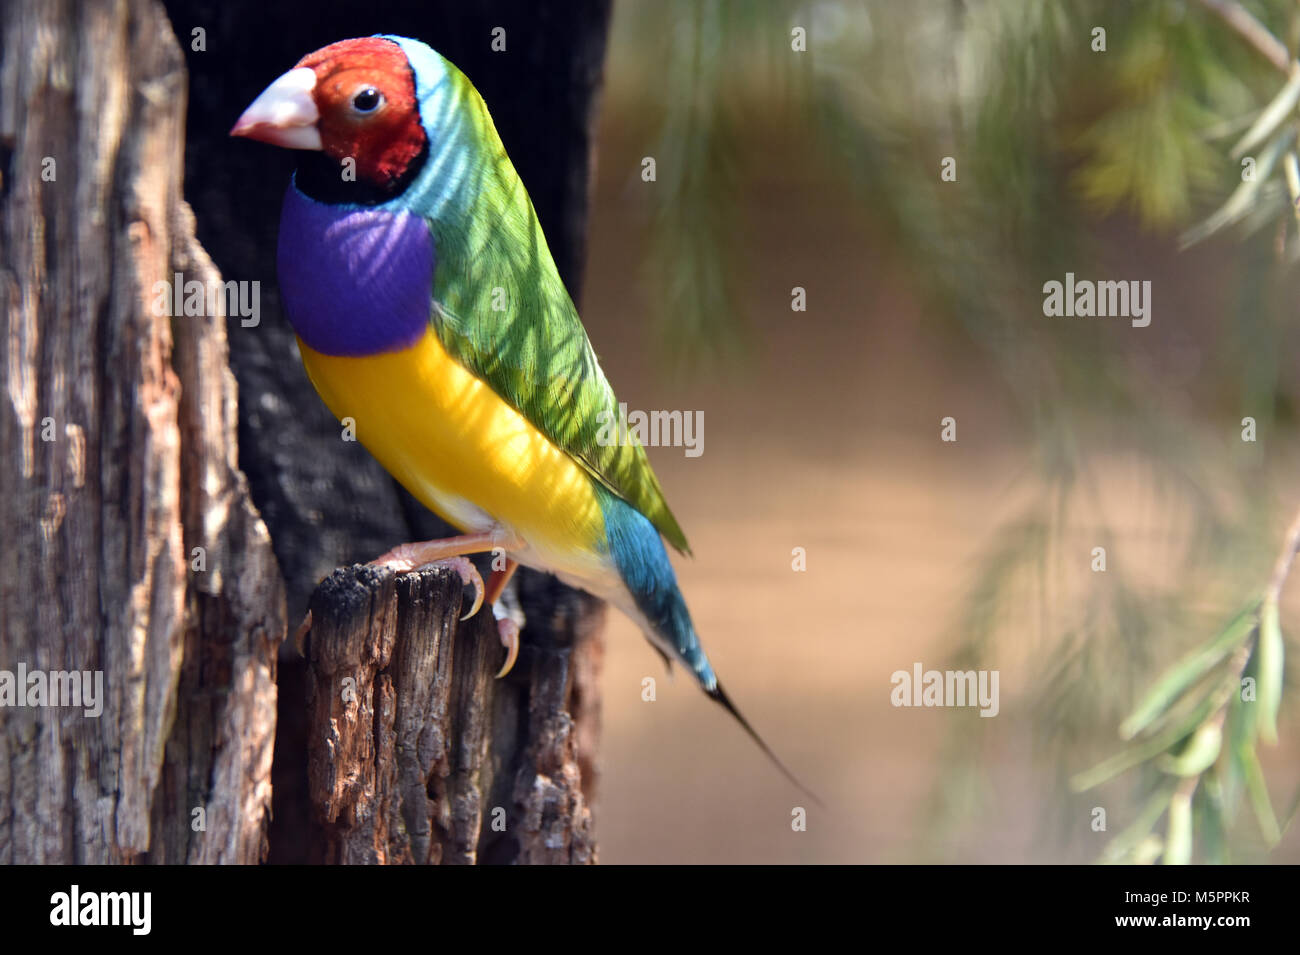 Gouldian finch - Stock Image